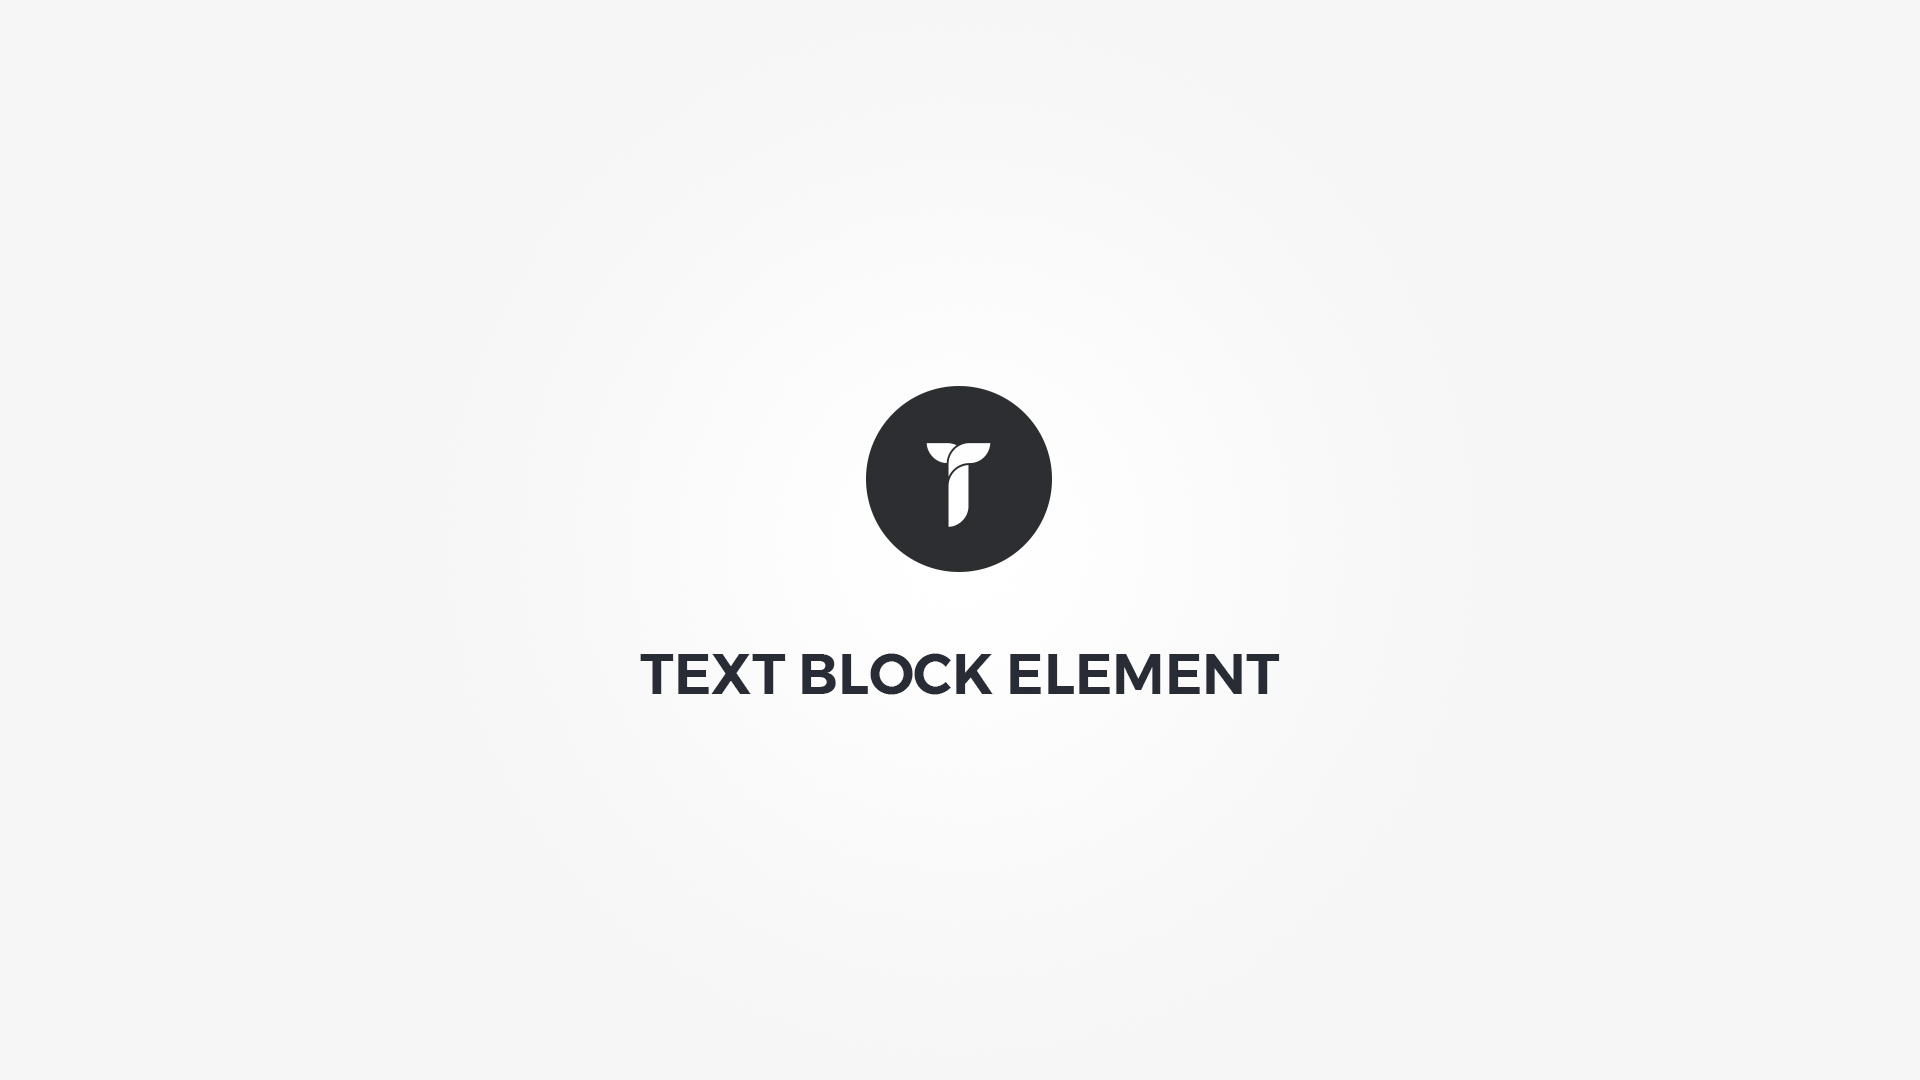 Creatus WordPress Theme Text Block Element